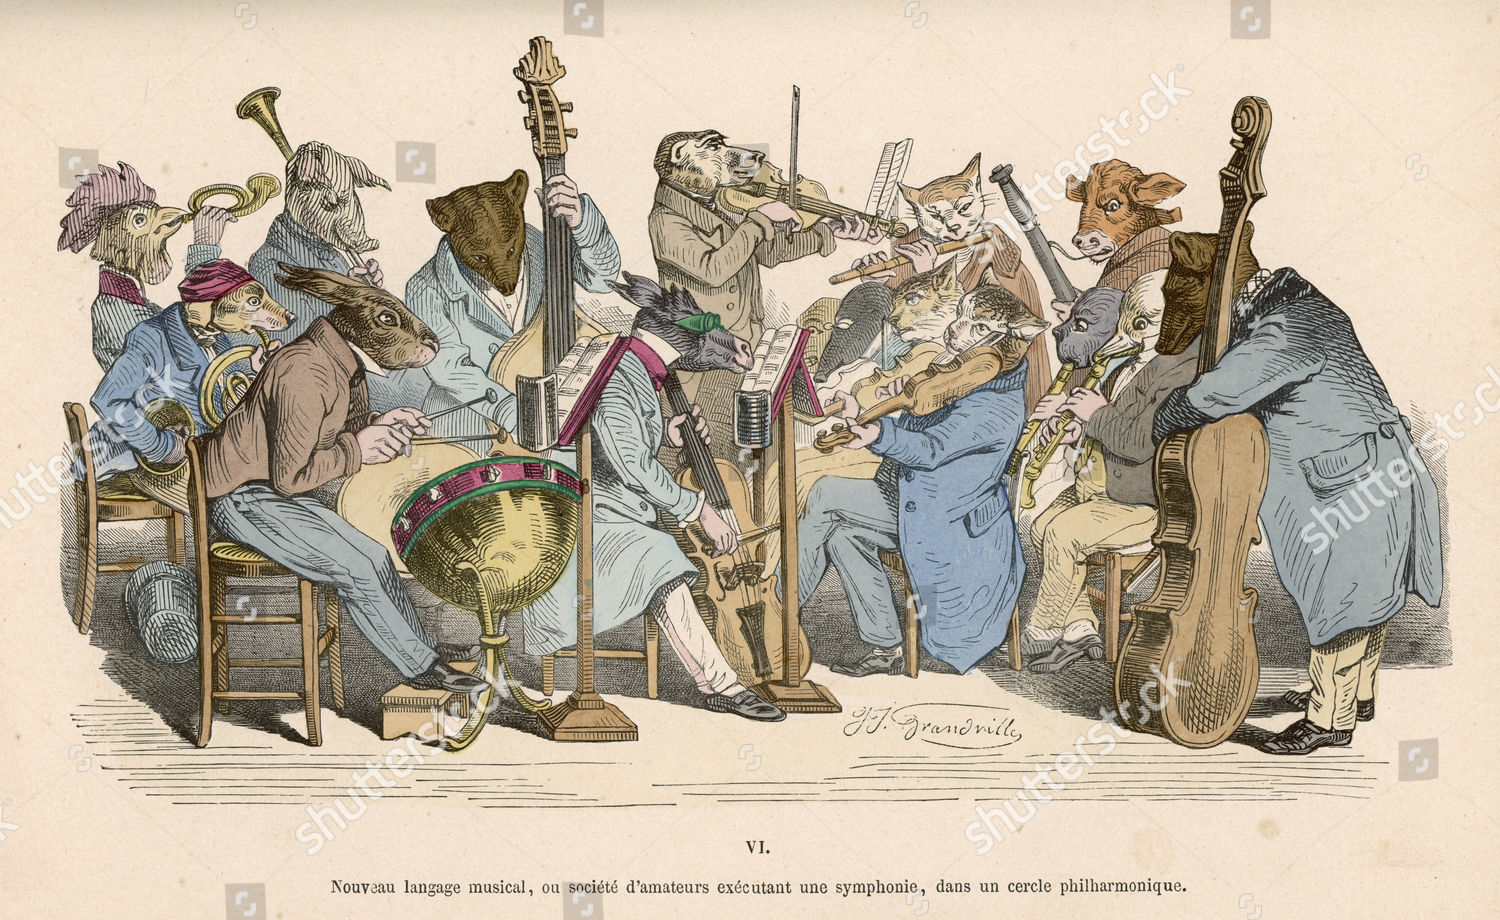 musicians satirised by being represented animals 1828 editorial